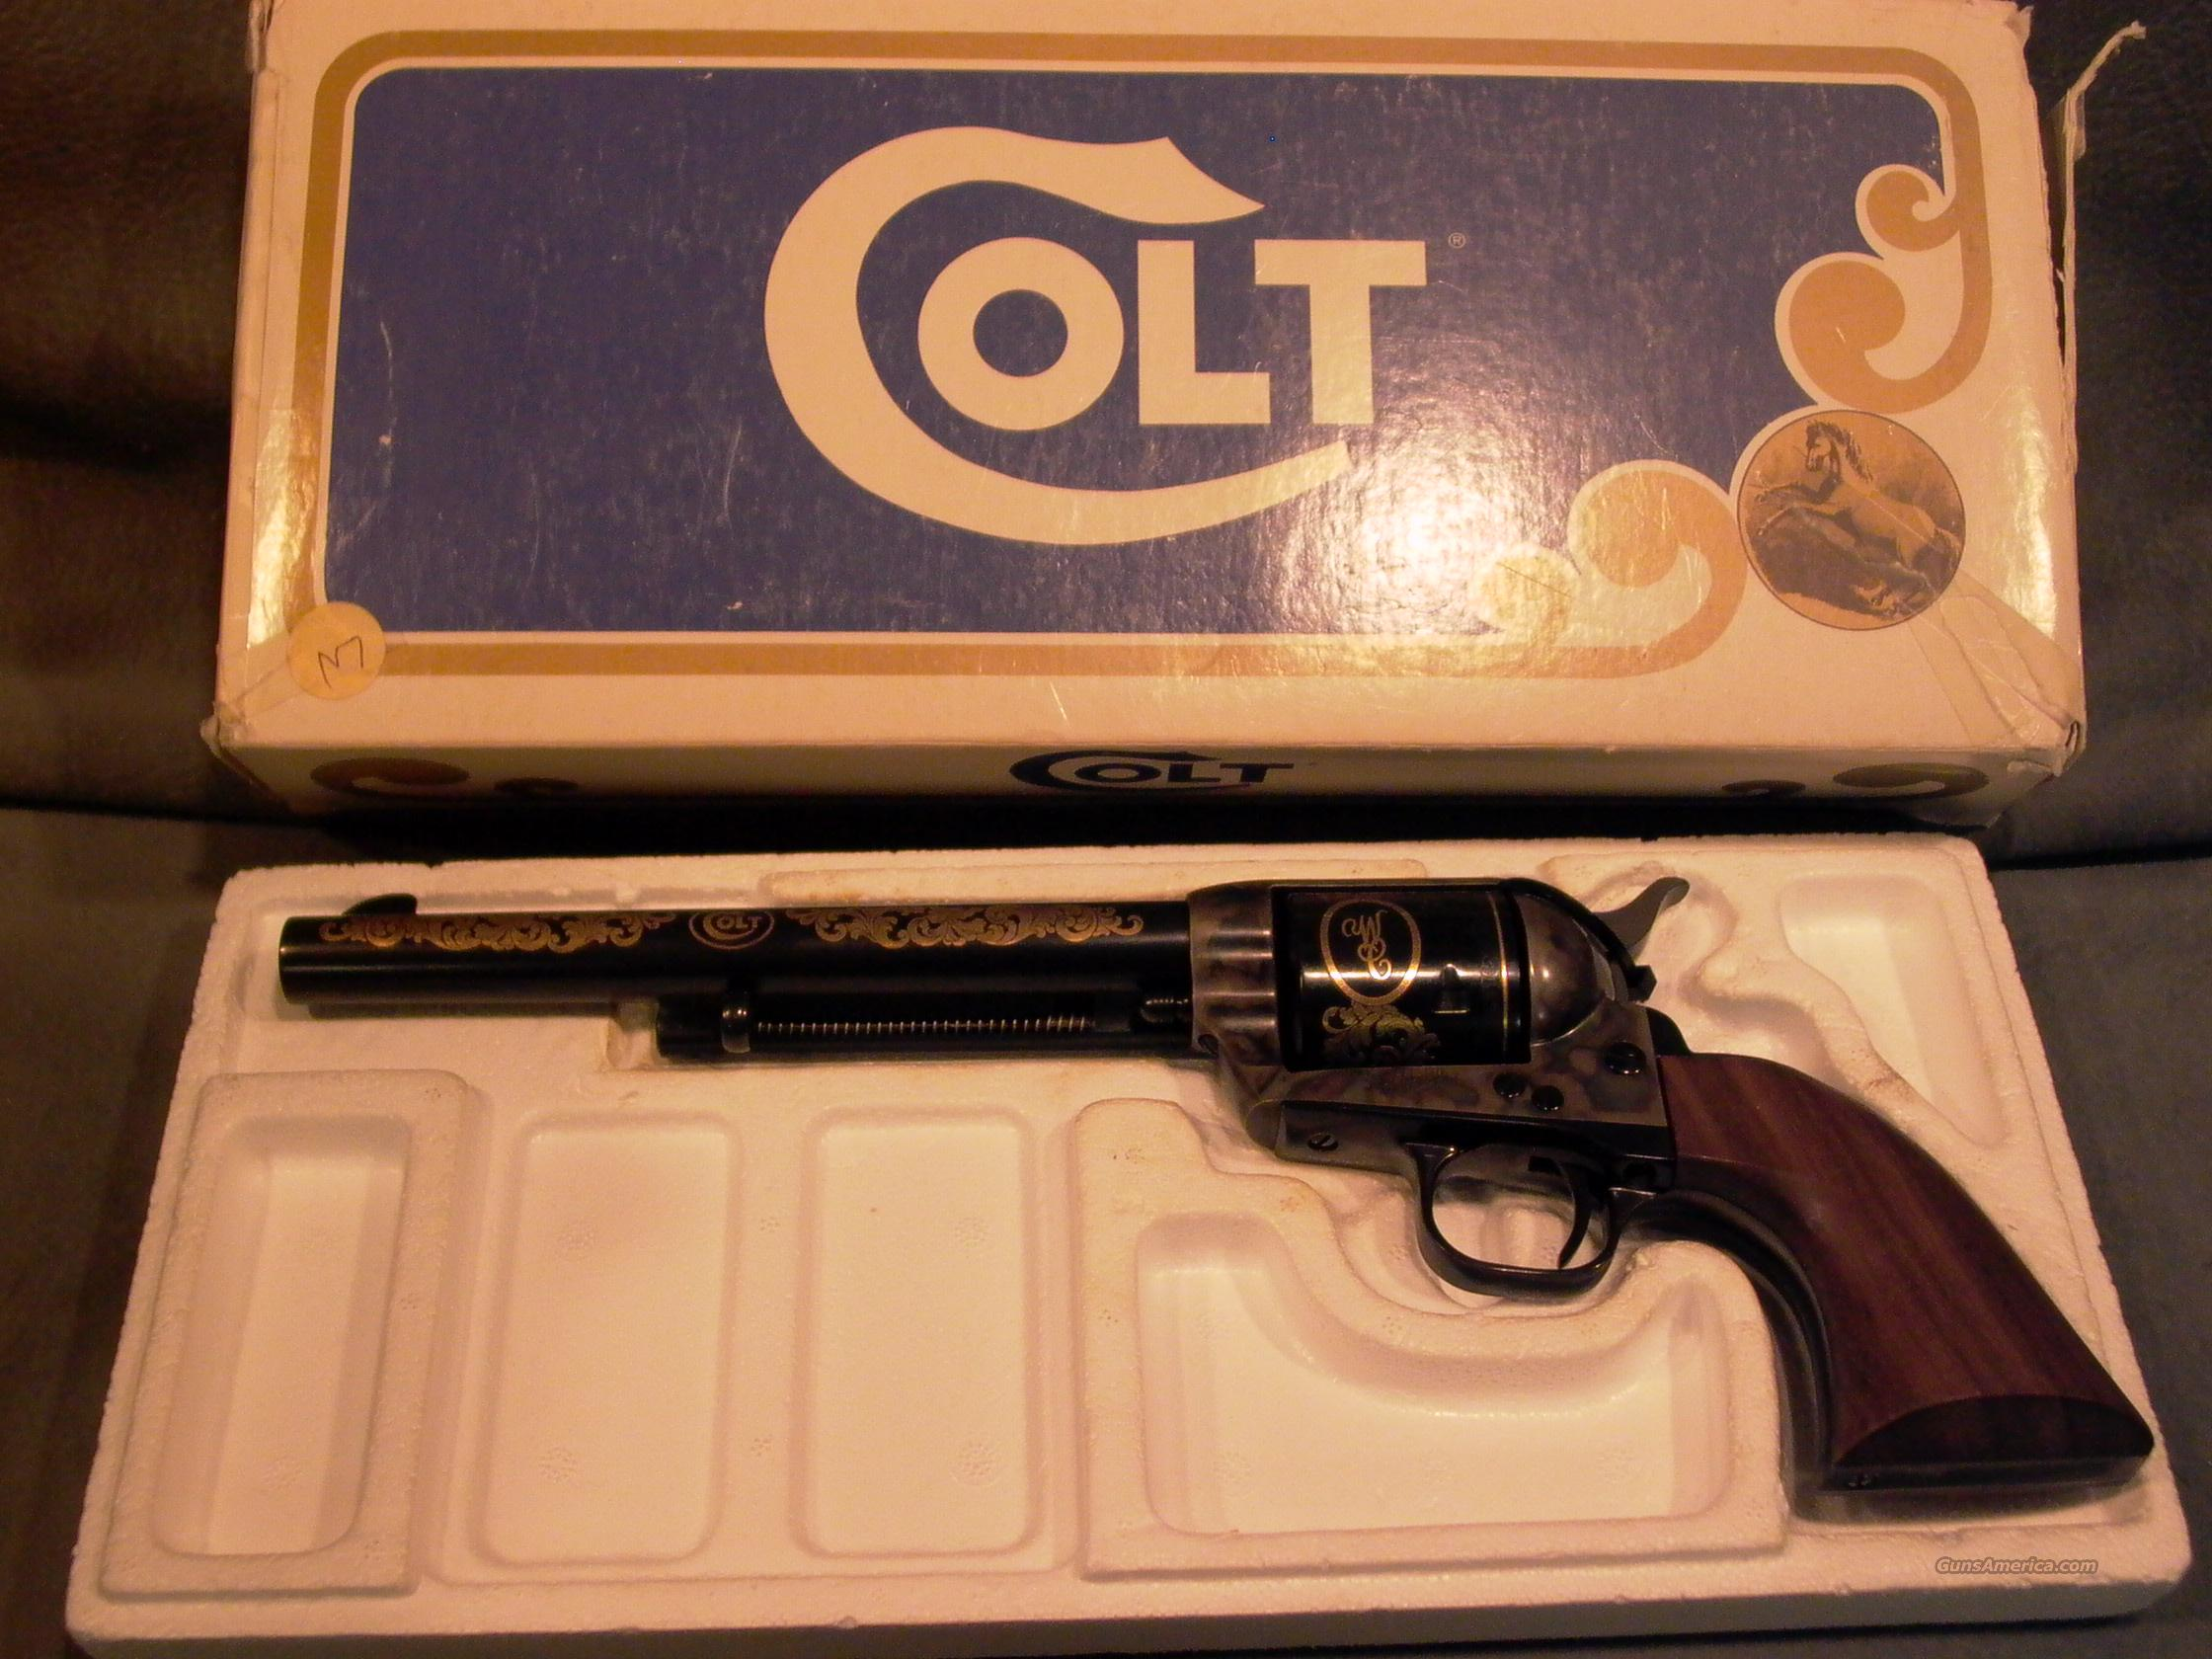 "Colt SAA 44-40 7 1/2"" with gold  Guns > Pistols > Colt Single Action Revolvers - 3rd Gen."